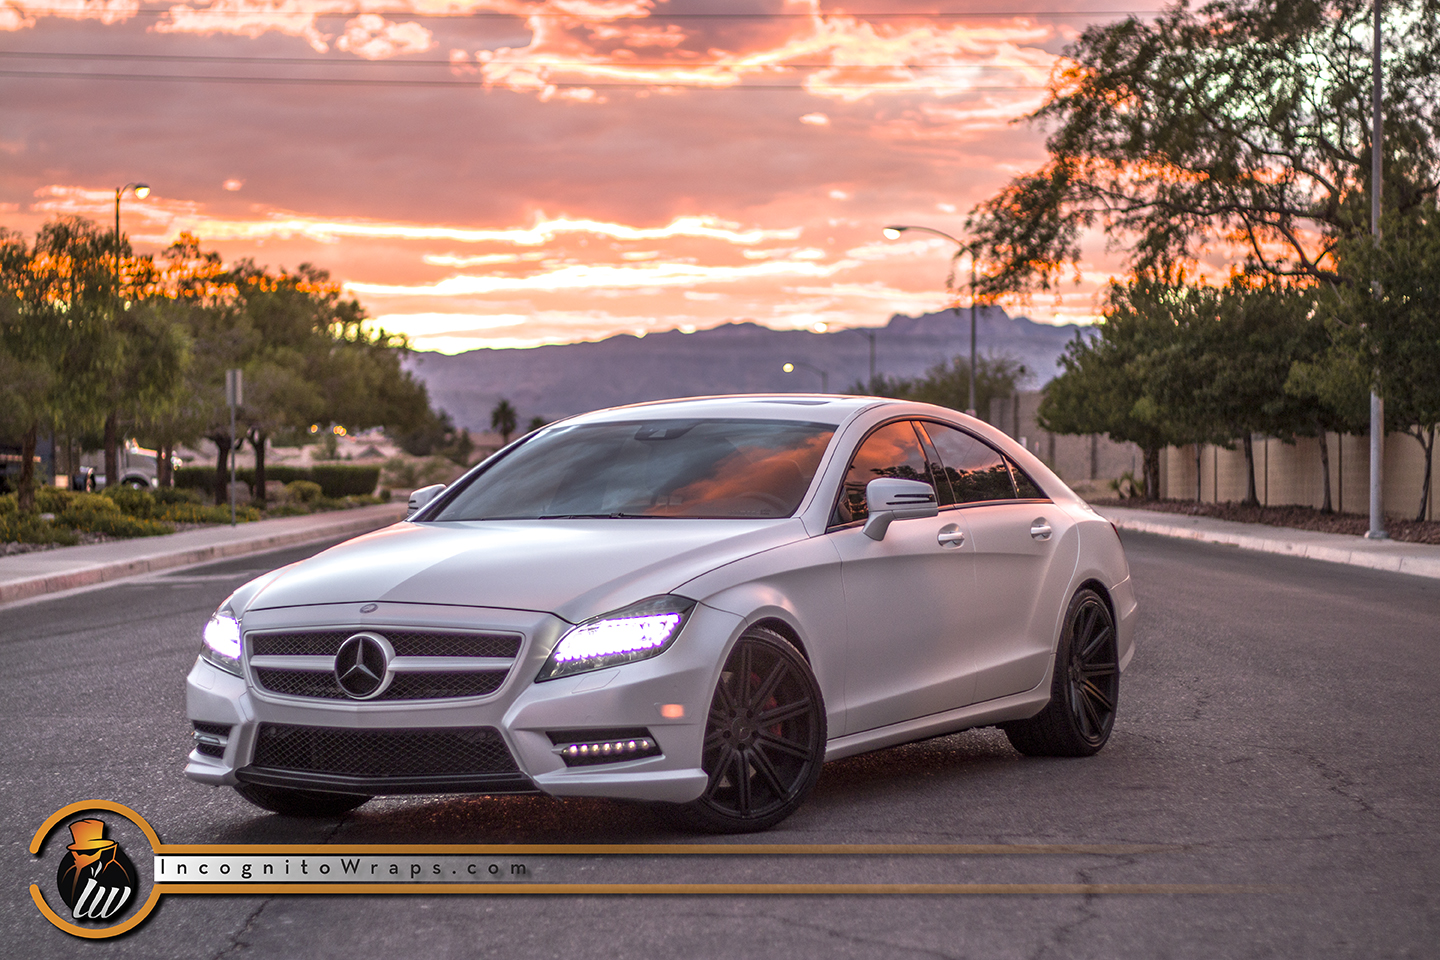 Mercedes CLS 550 - Avery Satin Pearl White Wrap